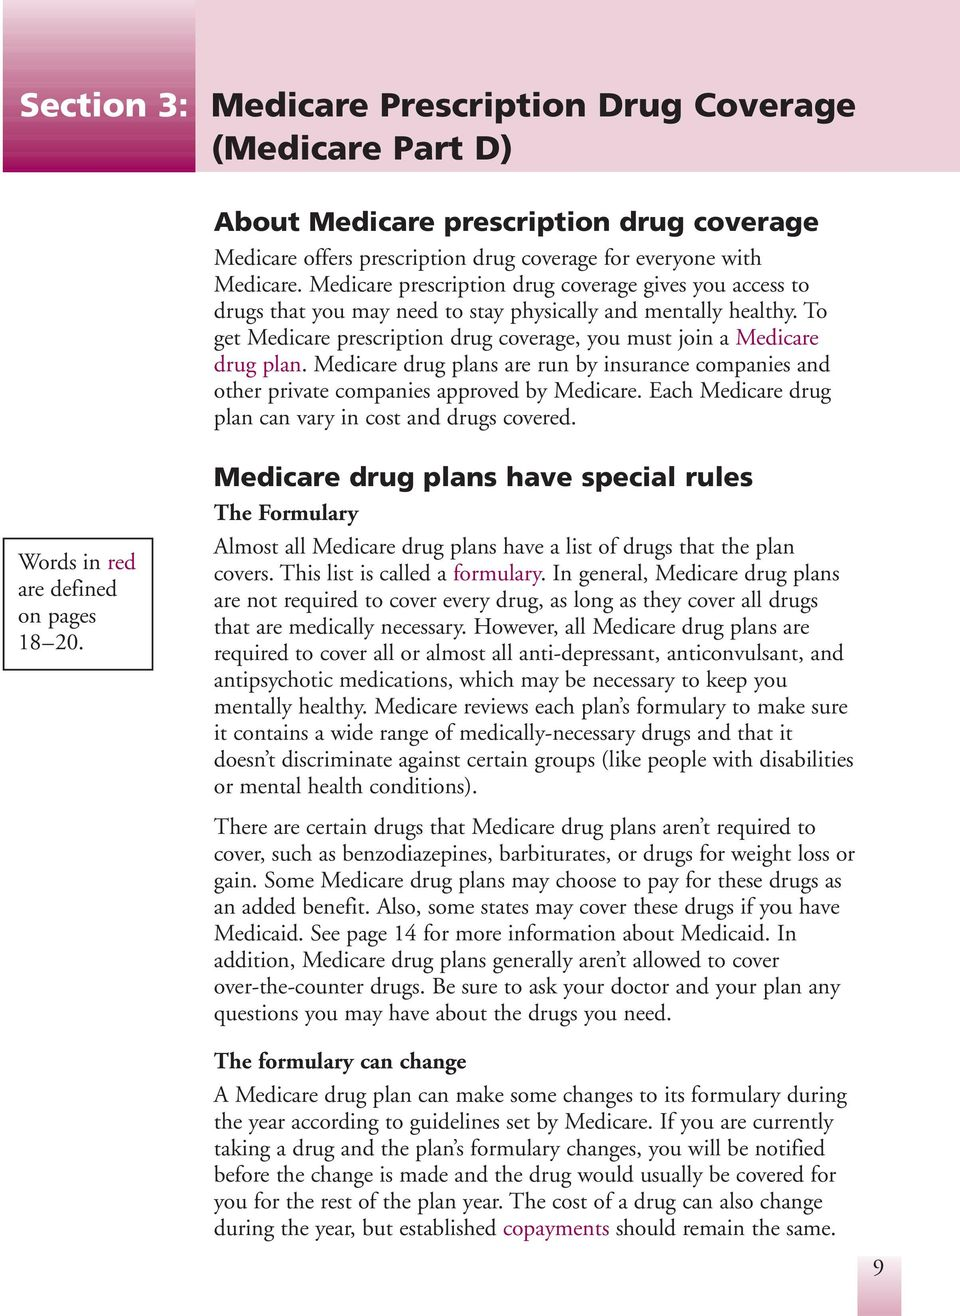 Medicare drug plans are run by insurance companies and other private companies approved by Medicare. Each Medicare drug plan can vary in cost and drugs covered.